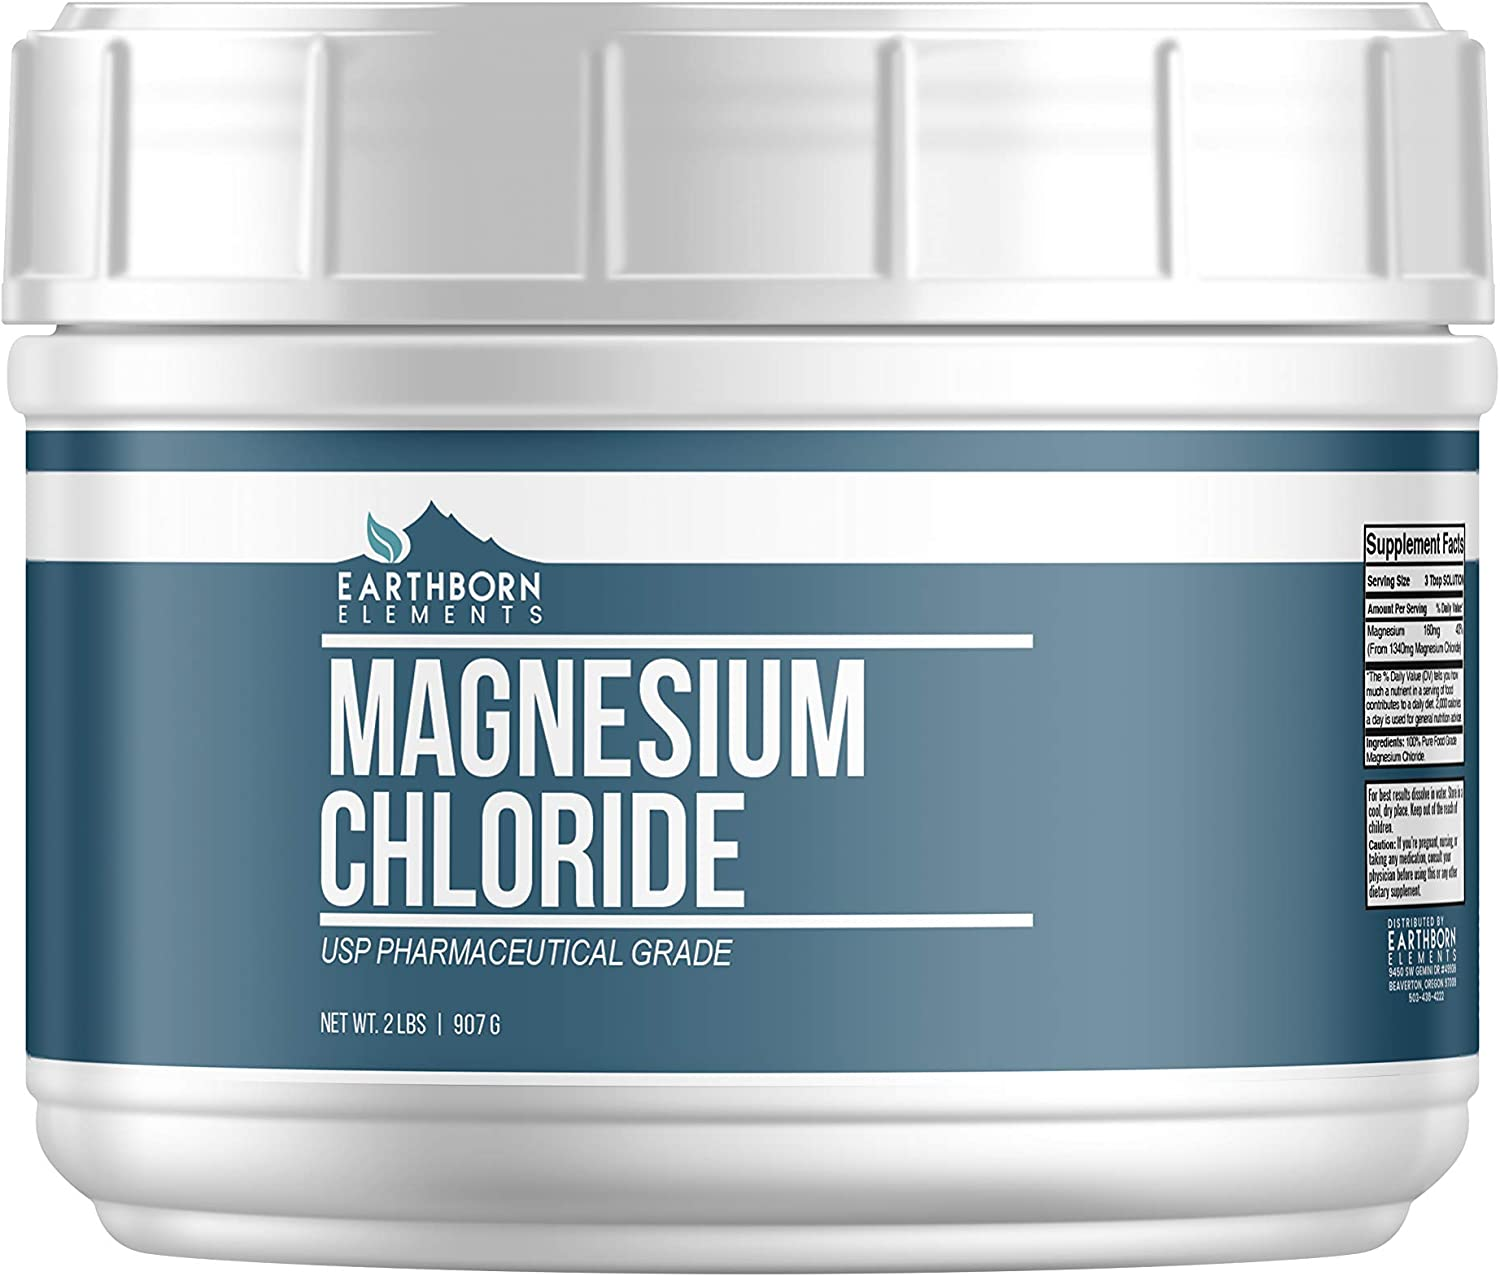 Magnesium Chloride (2 lb.) by Earthborn Elements, Resealable Tub, Highest Quality, Edible Oral Supplement, Food & USP Pharmaceutical Grade, Boost Magnesium Levels